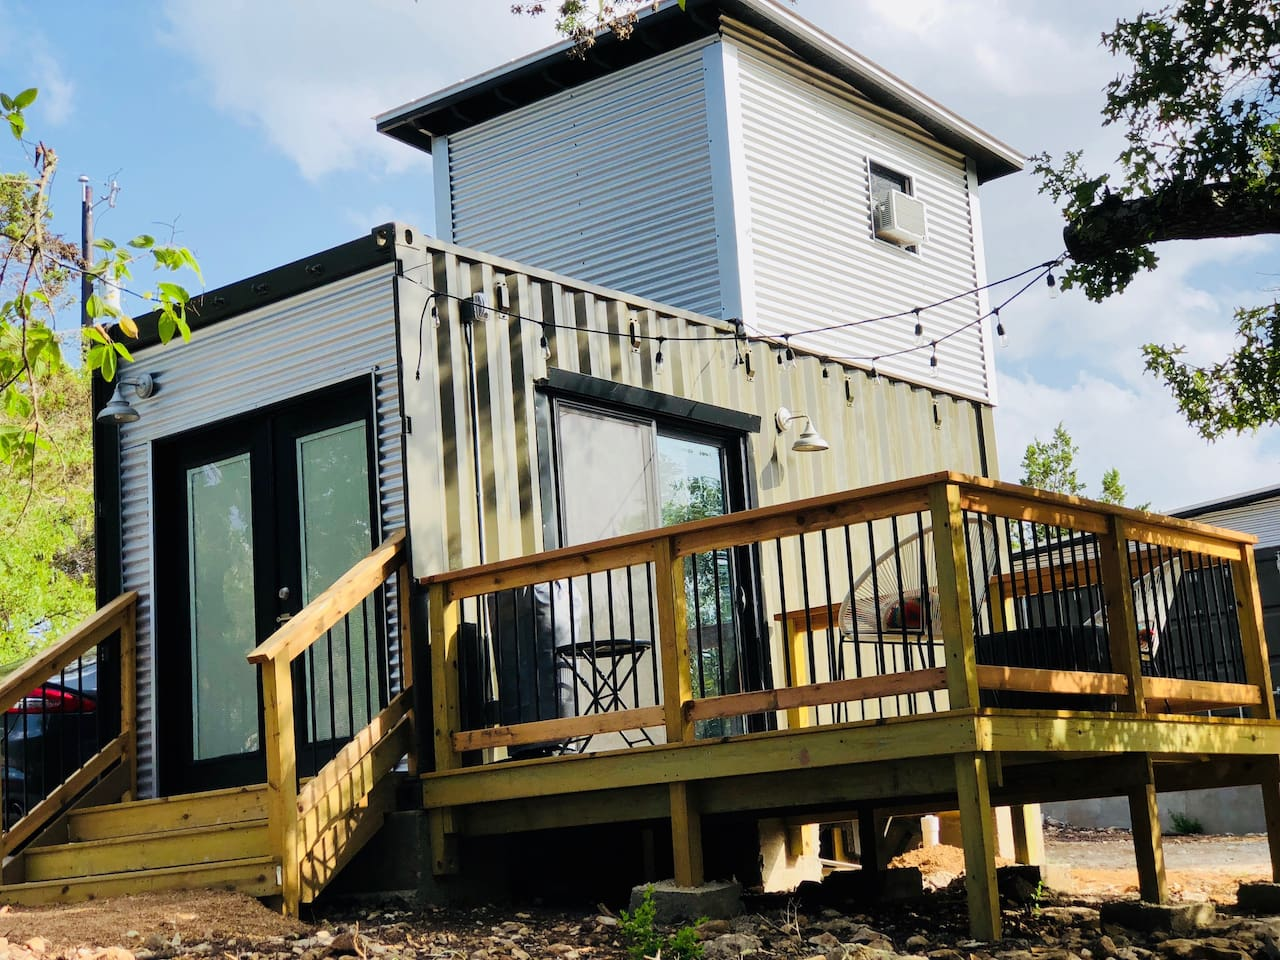 Tiny container guesthouse with deck